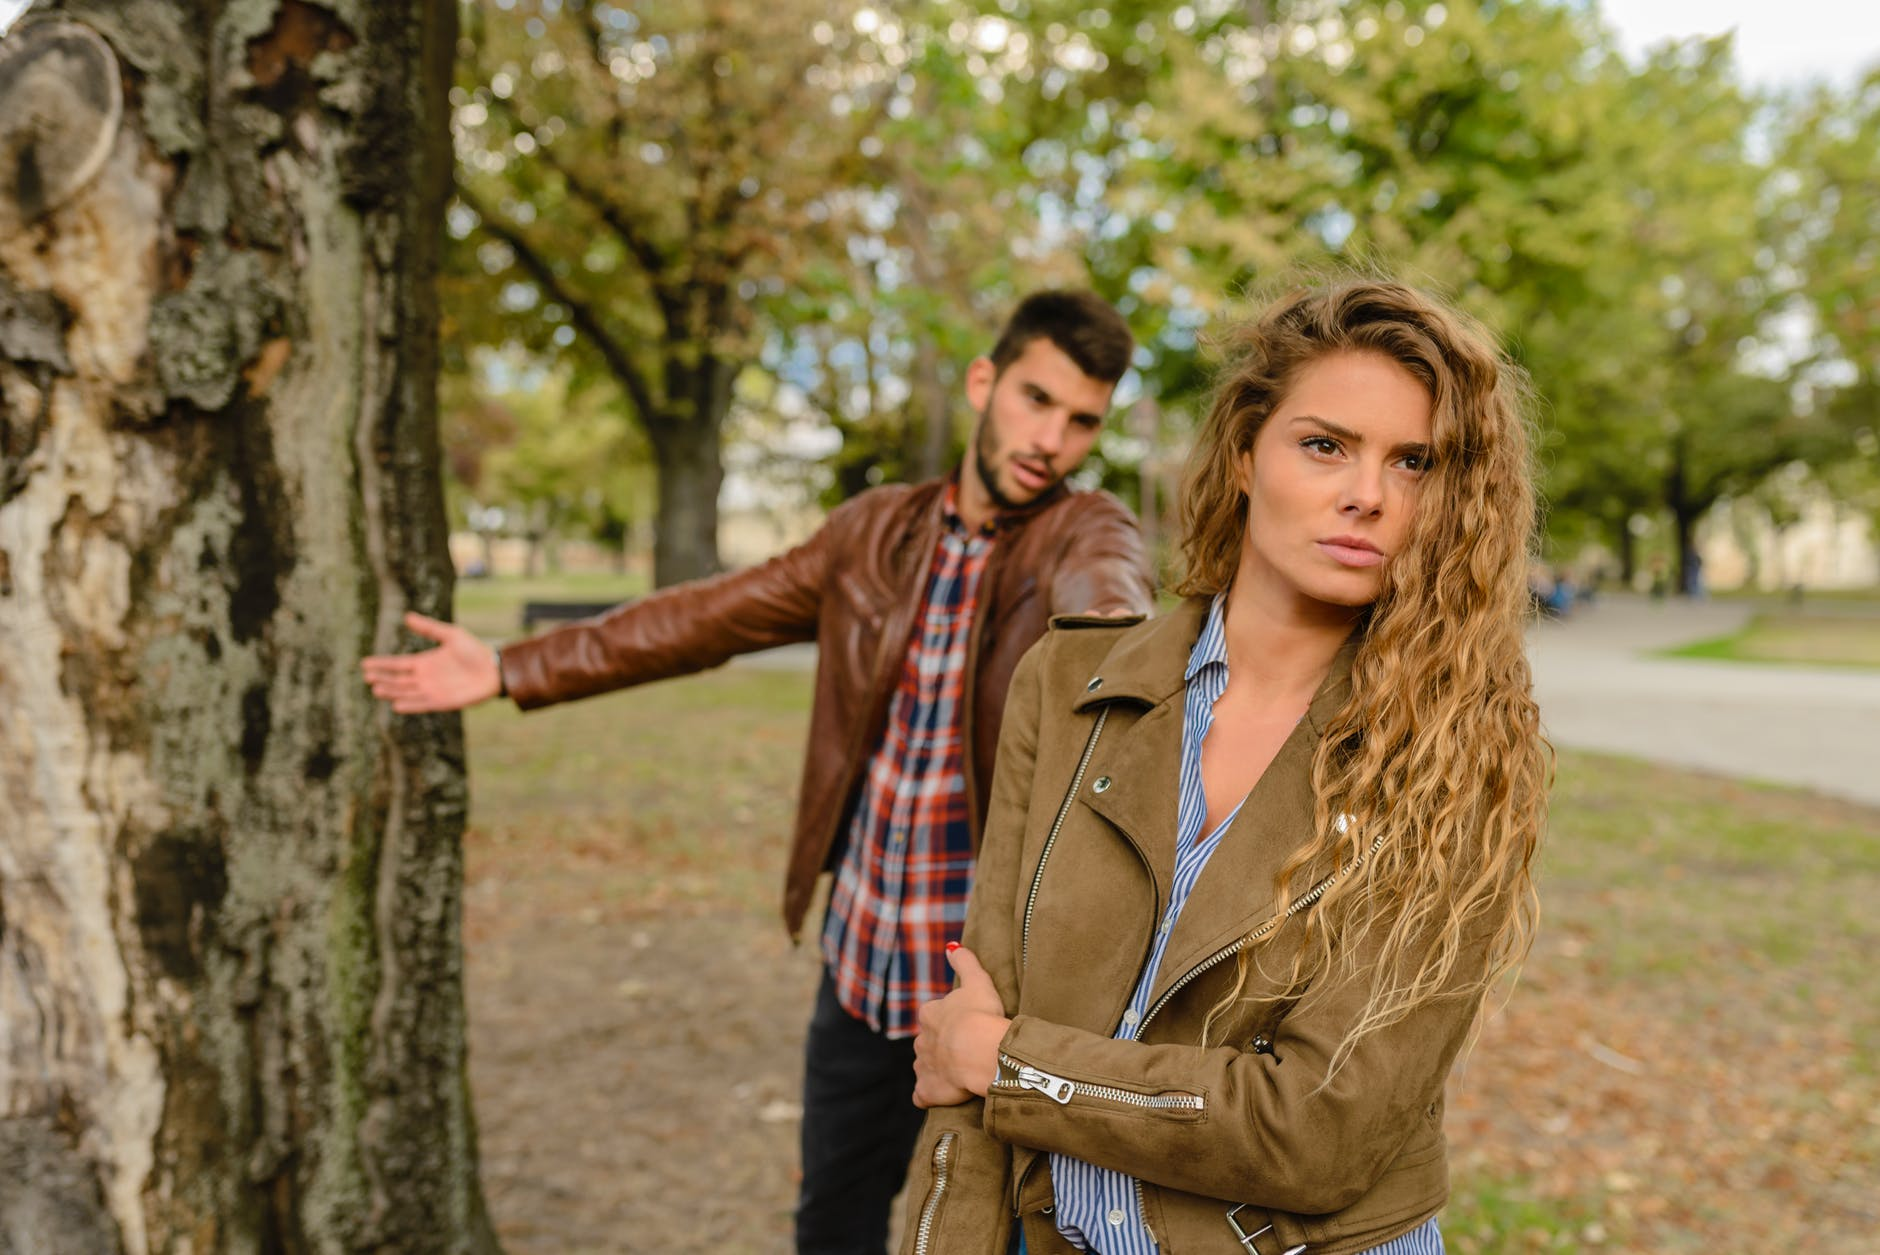 woman and man wearing brown jackets standing near tree